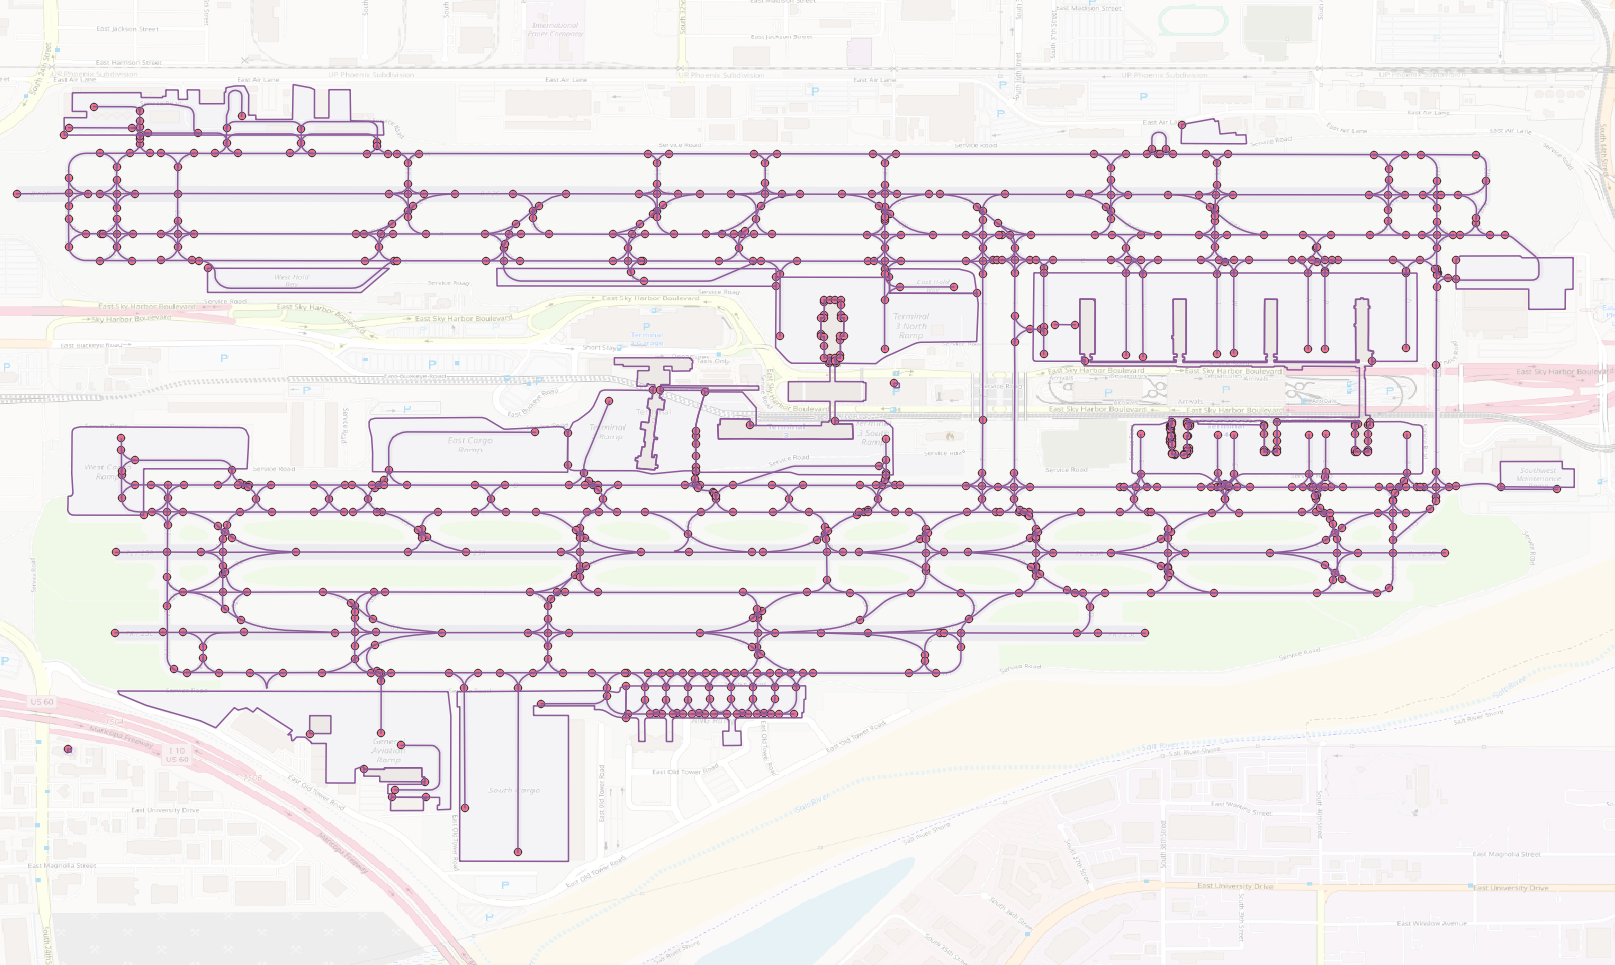 Optimizing Municipal Infrastructure with Smart City Planning